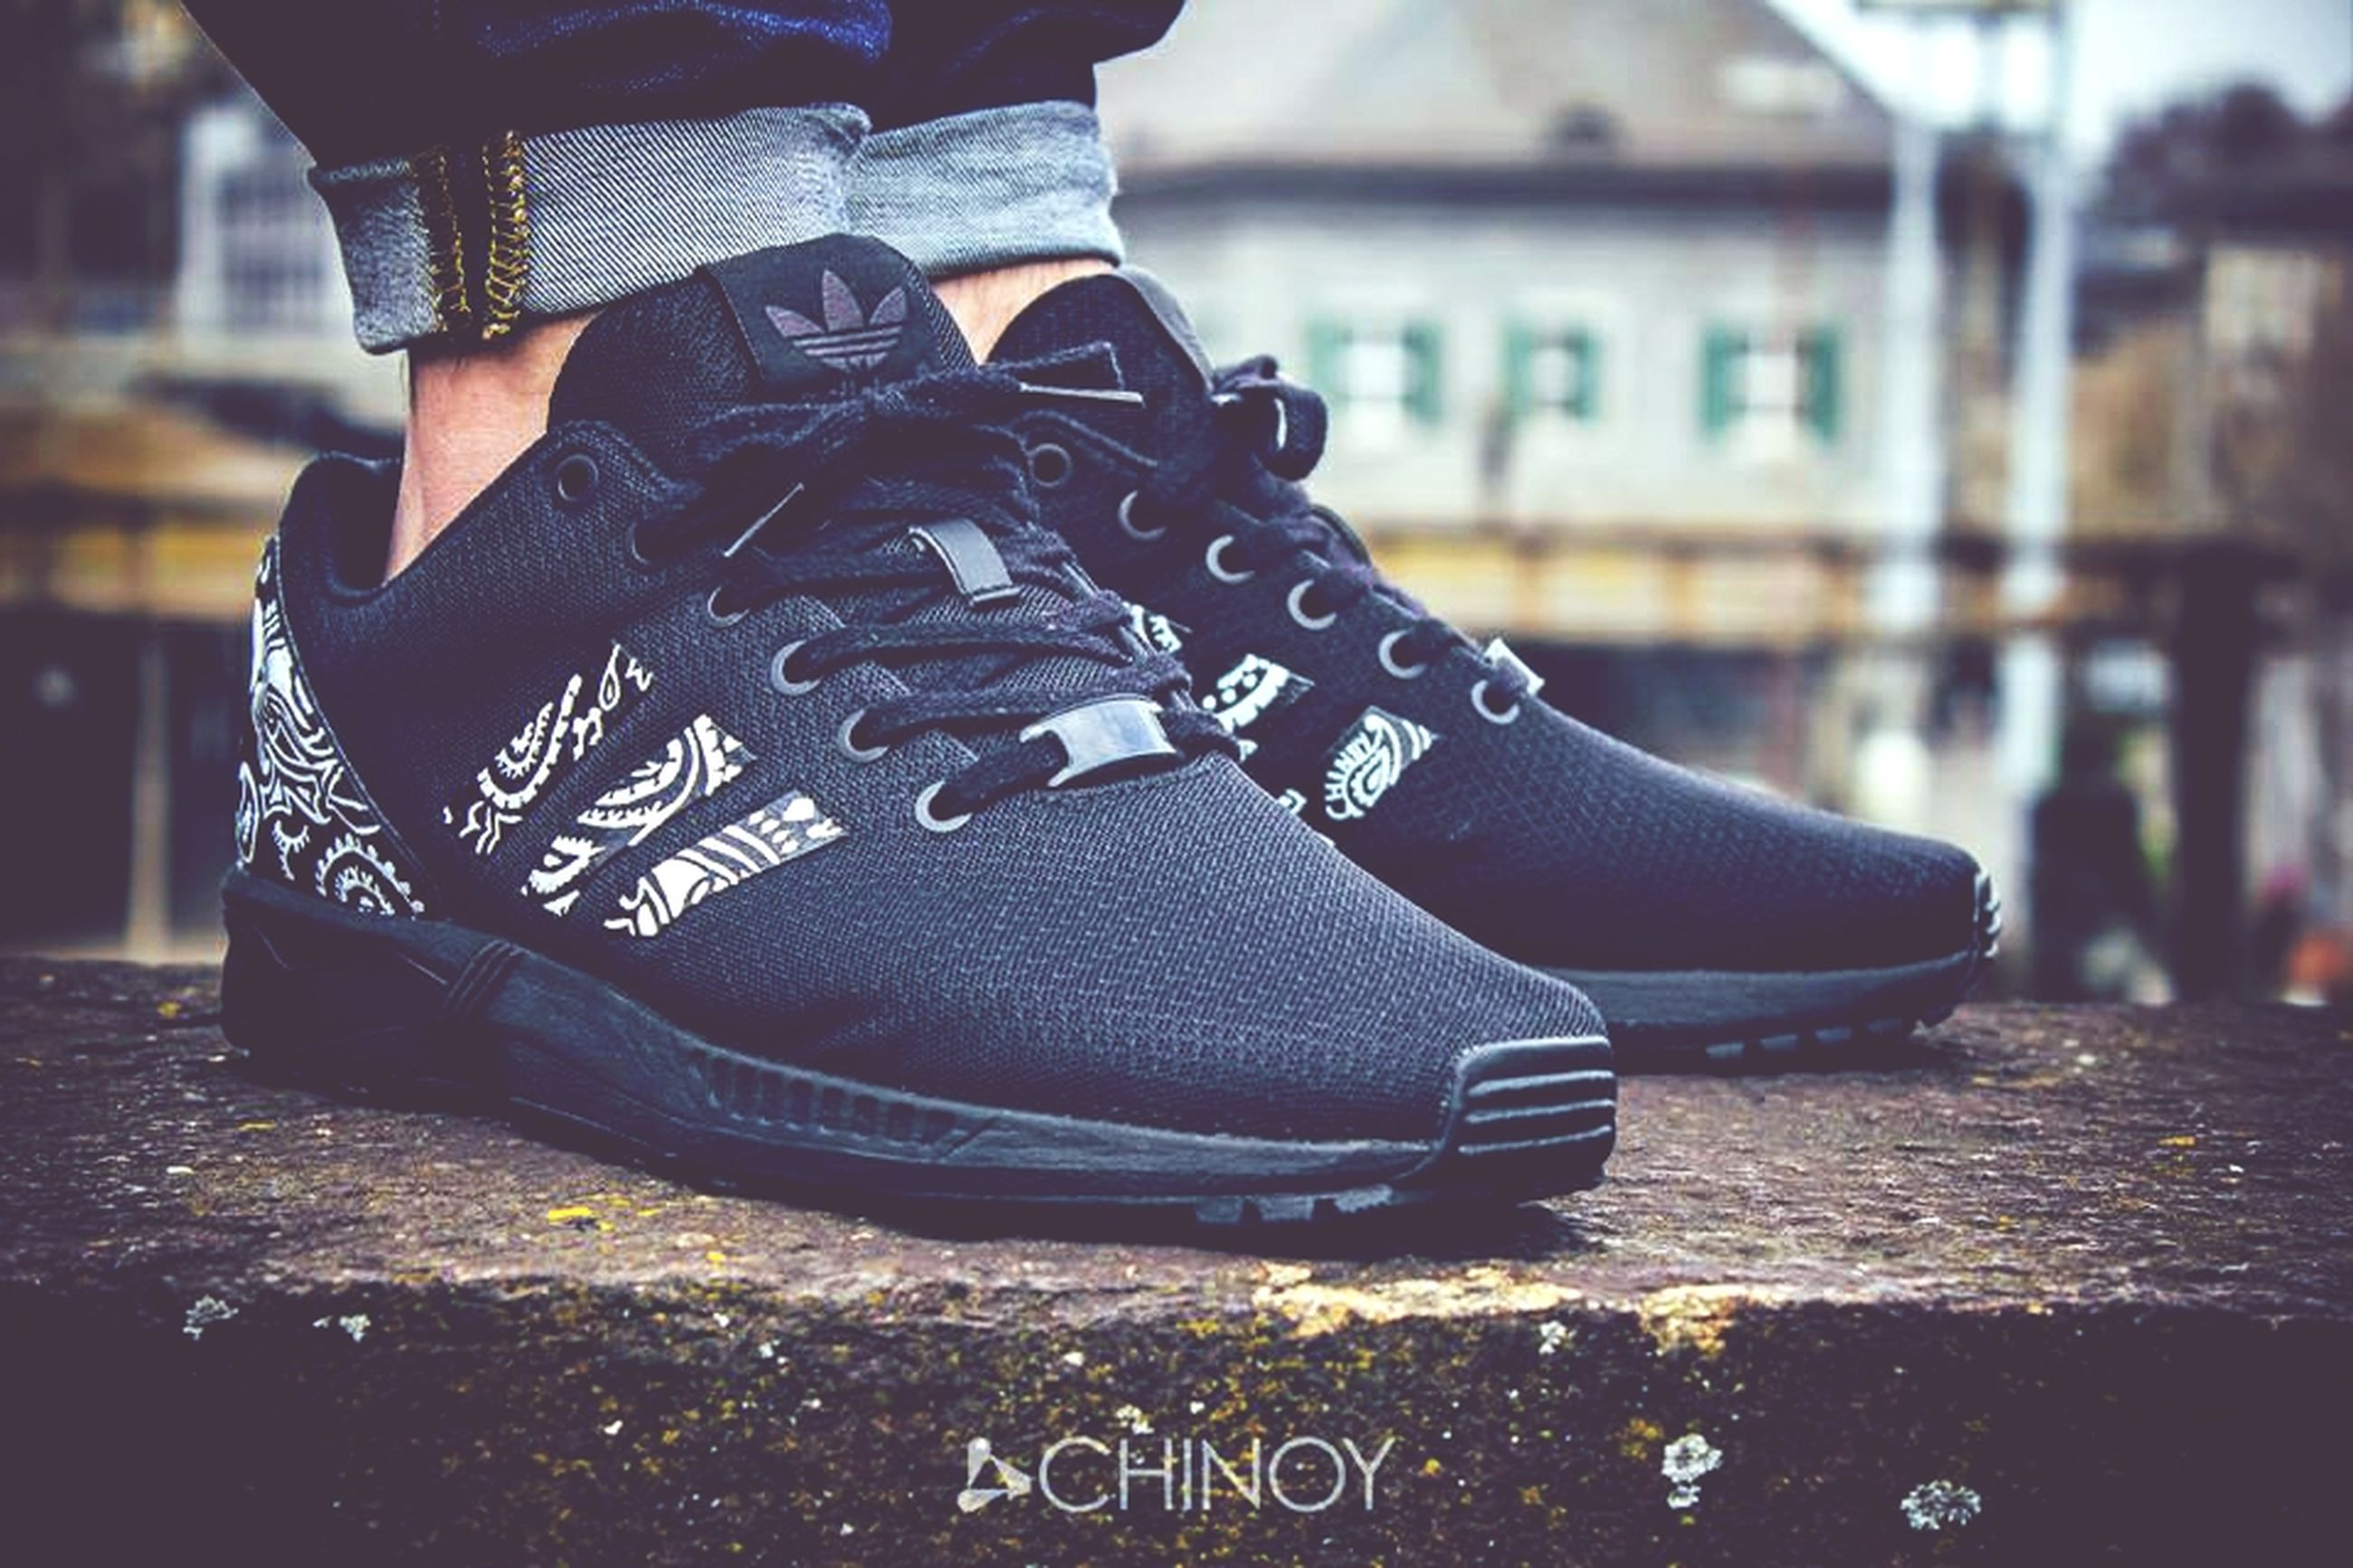 focus on foreground, lifestyles, text, low section, leisure activity, standing, men, western script, communication, street, person, close-up, casual clothing, midsection, shoe, selective focus, holding